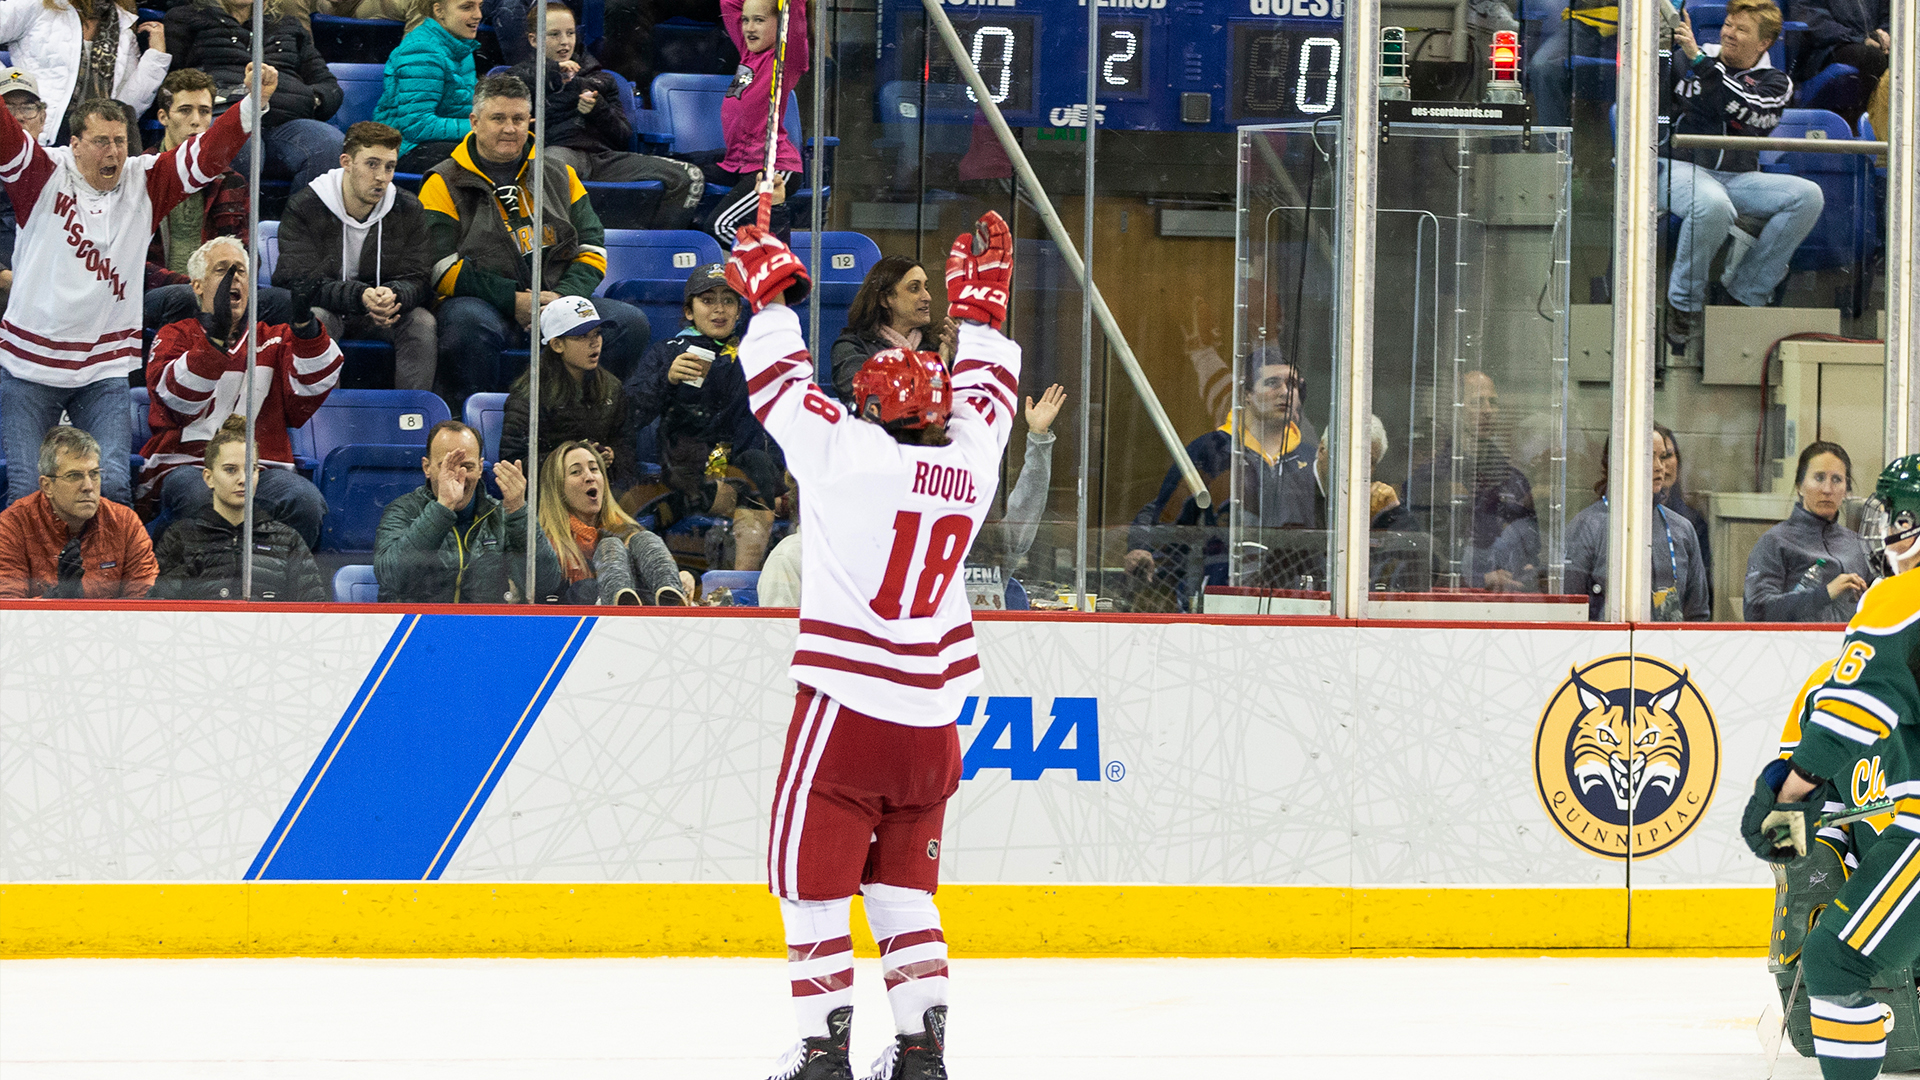 Roque named NCAA First Star of the Week